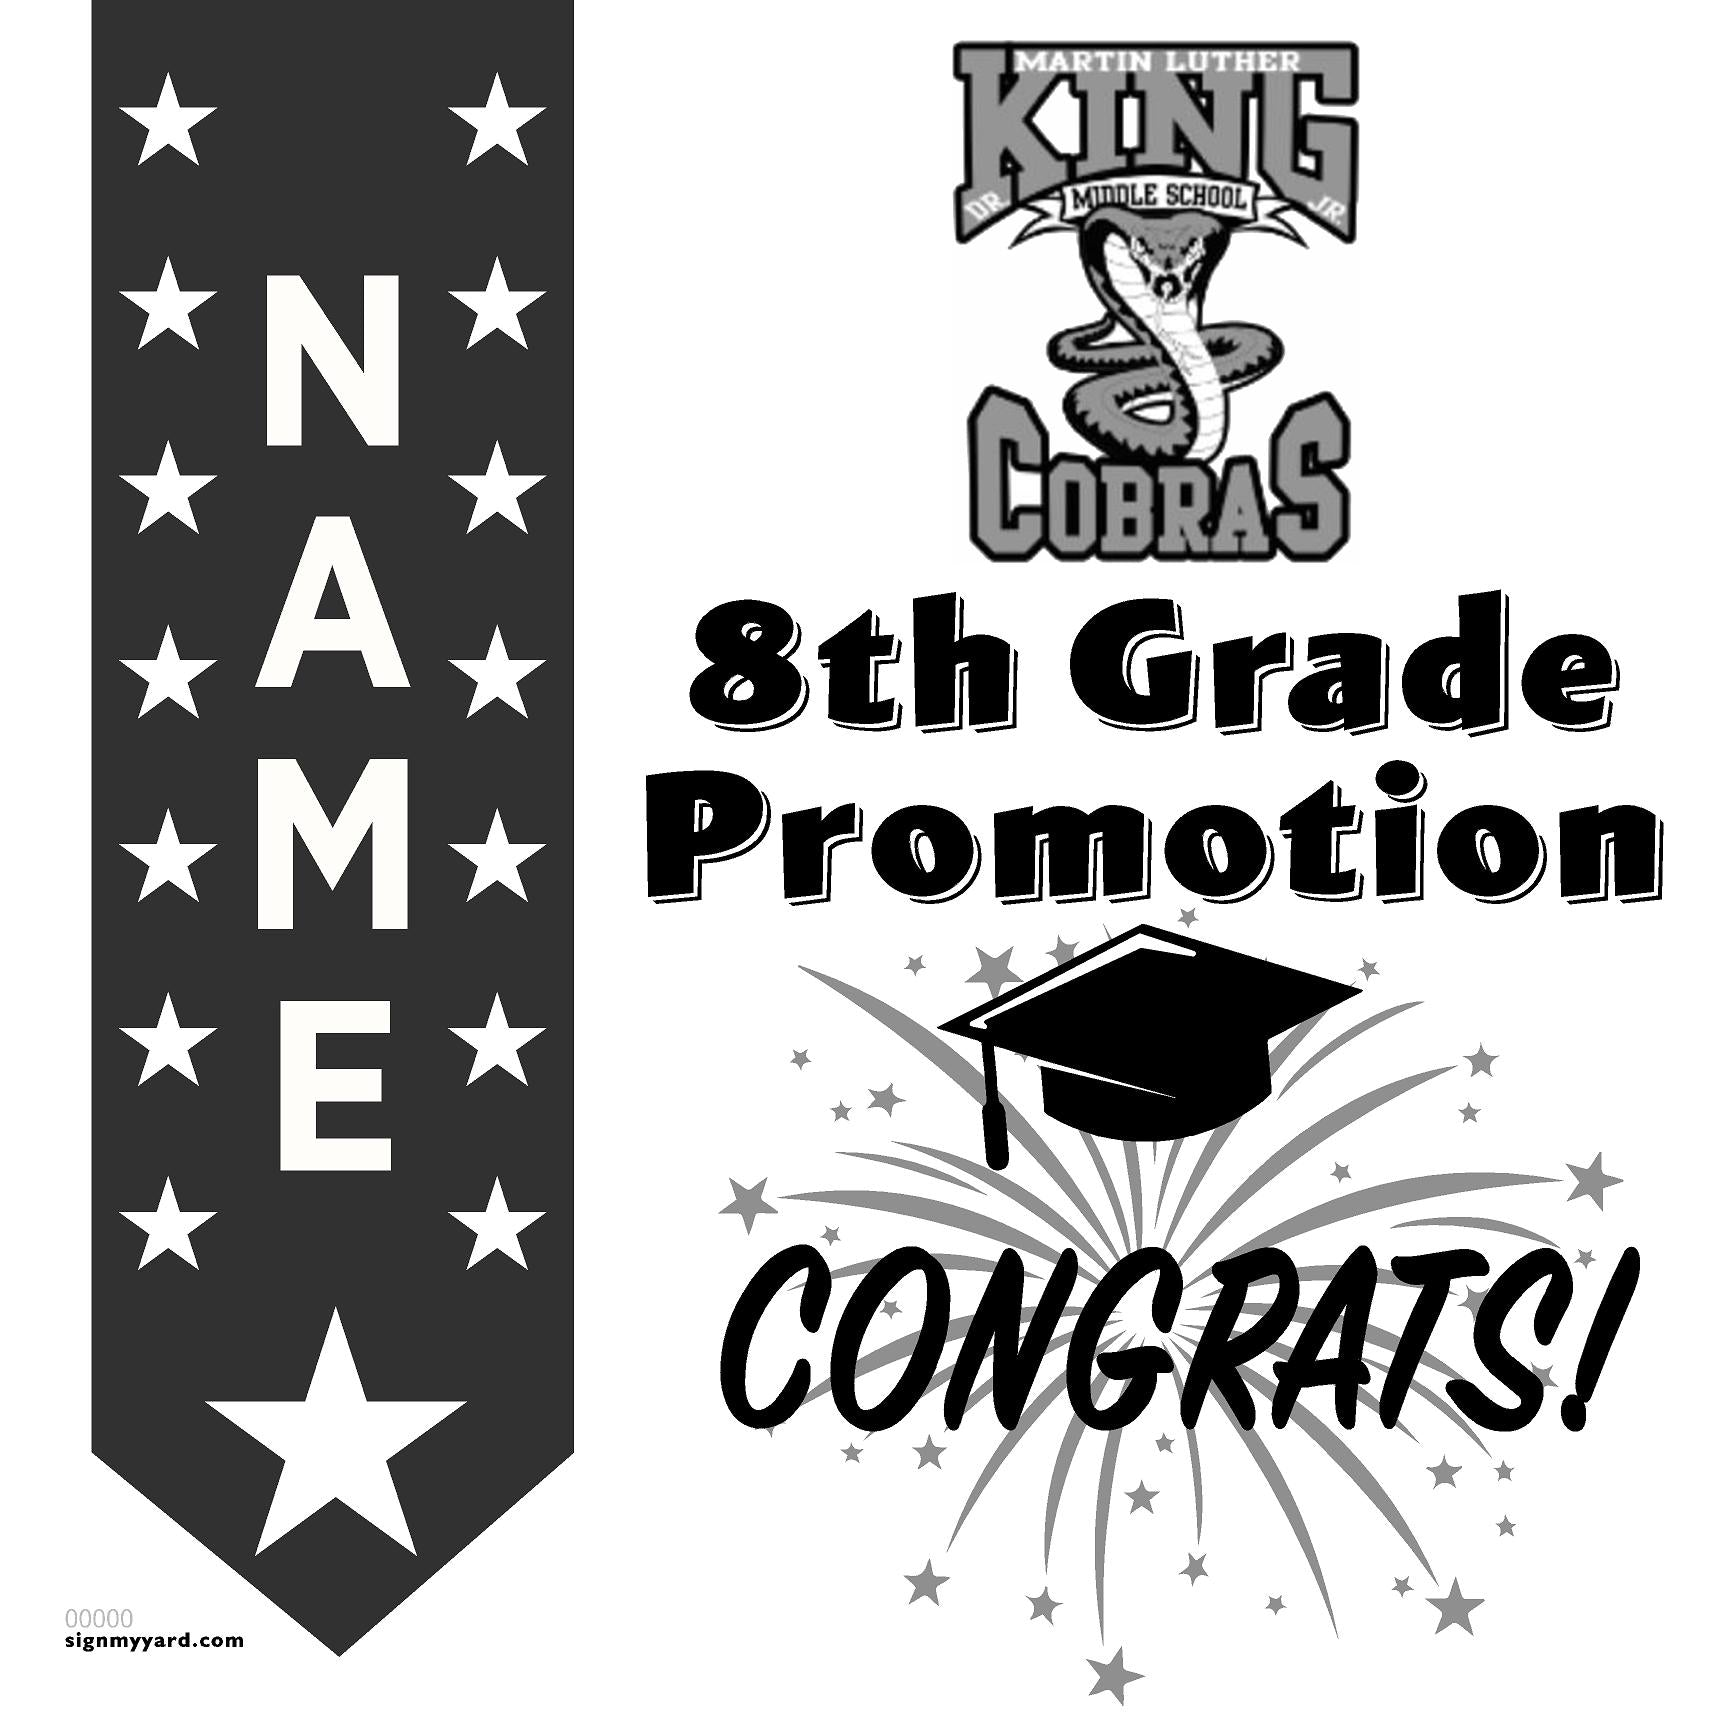 Martin Luther King Jr. Middle School 8th Grade Promotion 24x24 #shineon2024 Yard Sign (Option B)